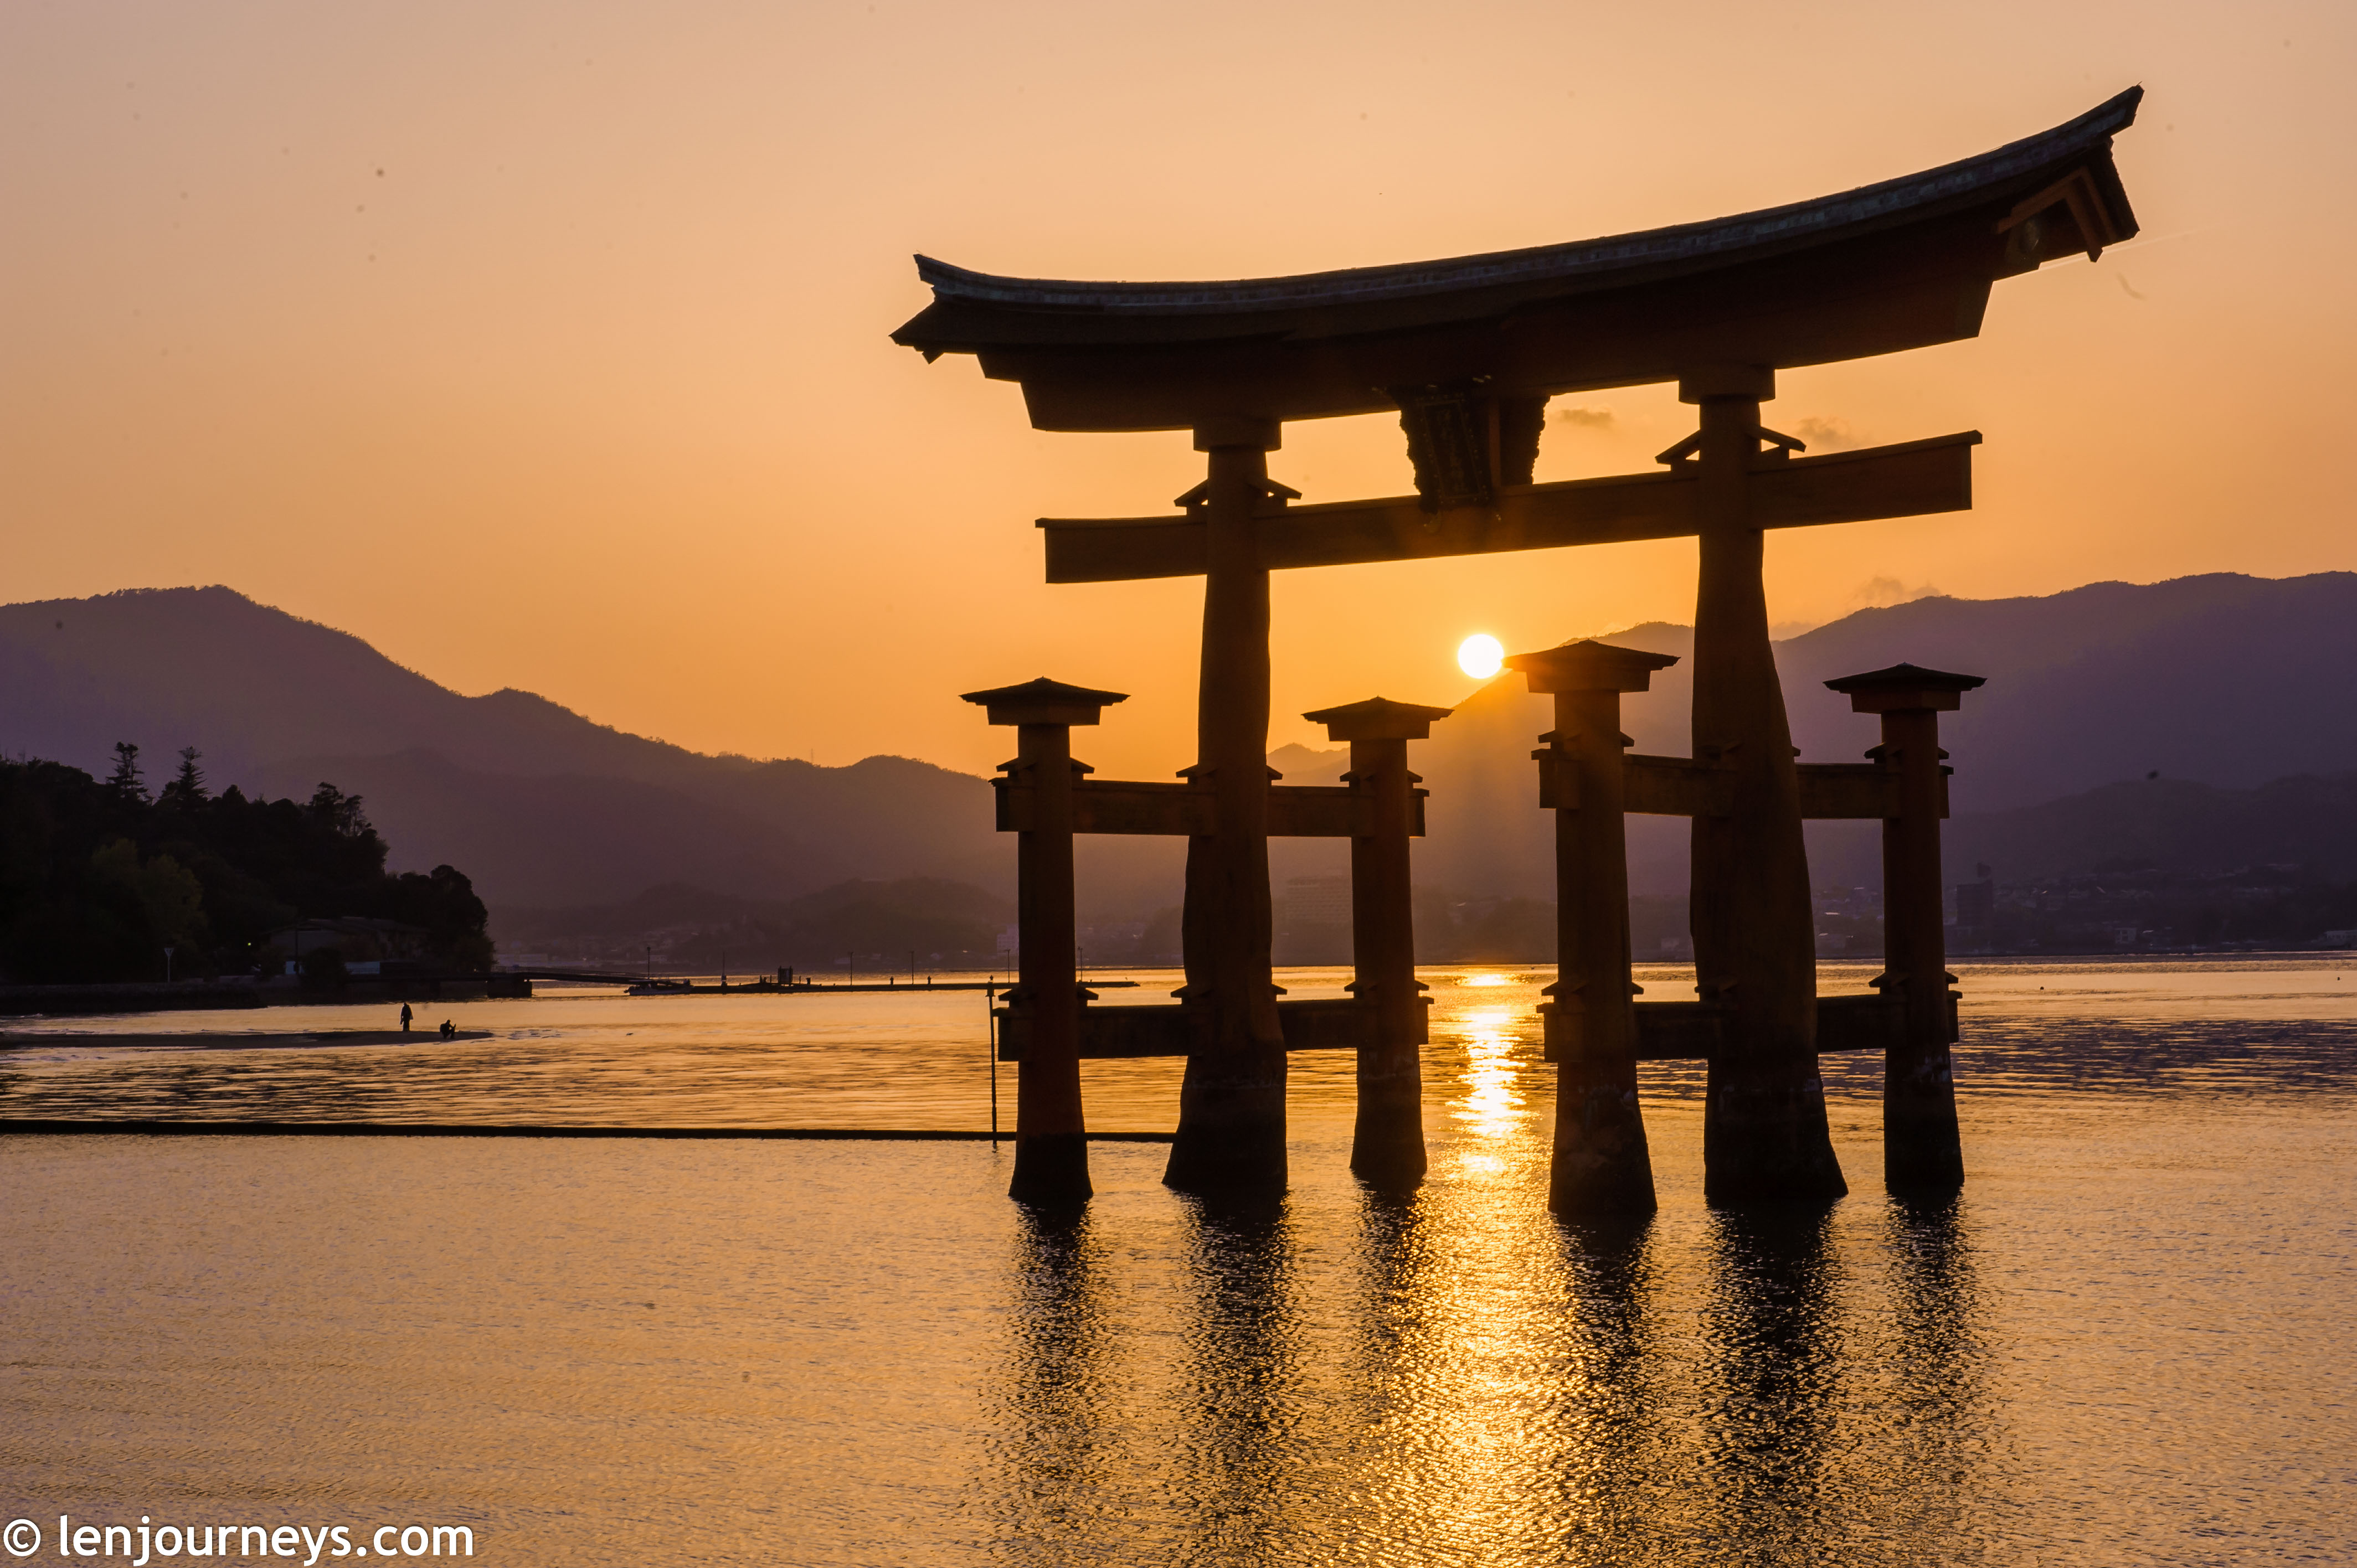 The Great Torii at dusk